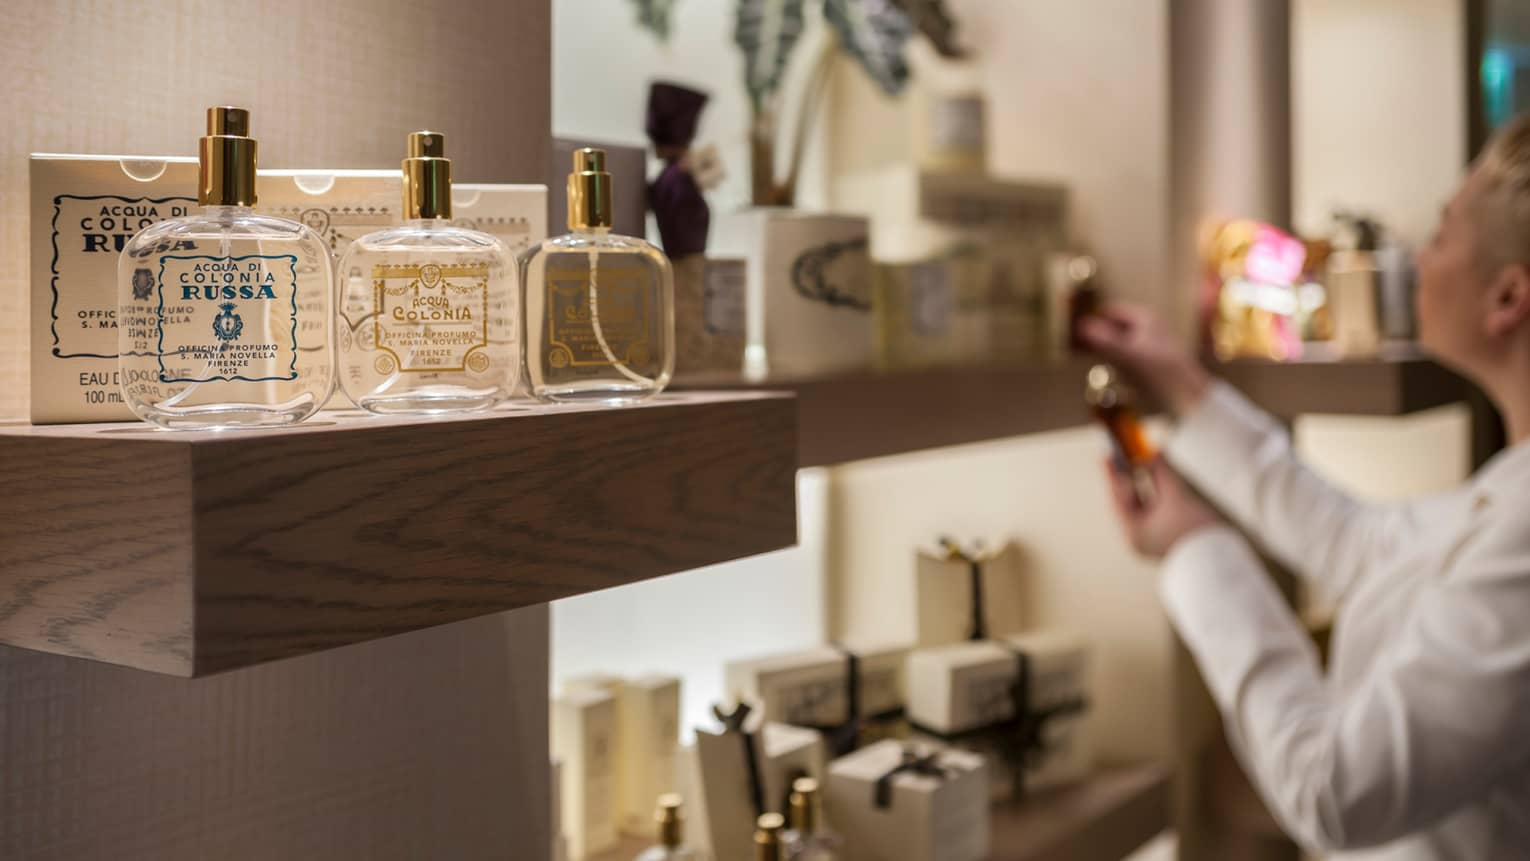 Close-up of three glass cologne bottles with out-of-focus person in background looking at retail store shelf